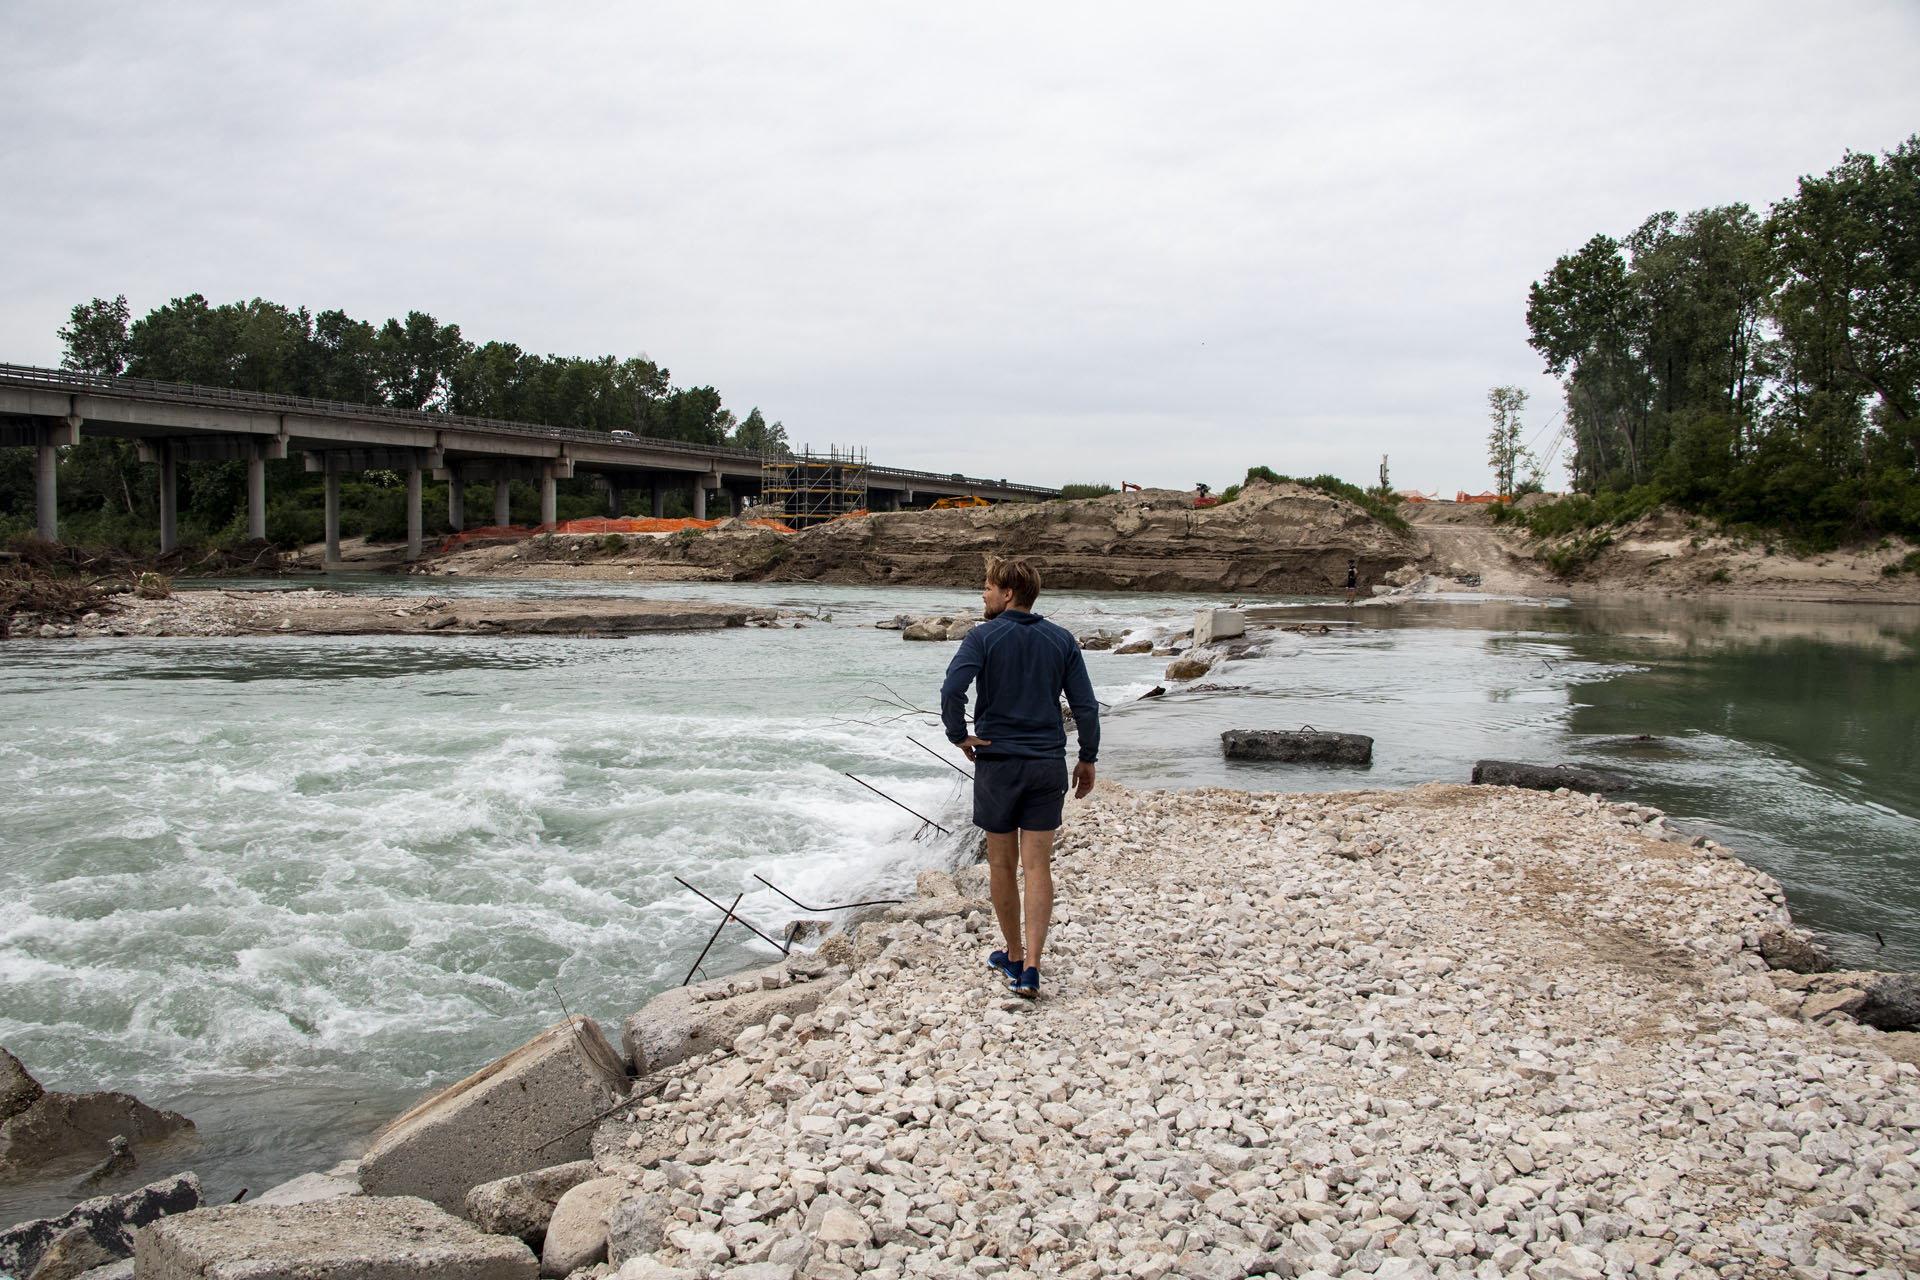 Construction stage at end of Tagliamento River